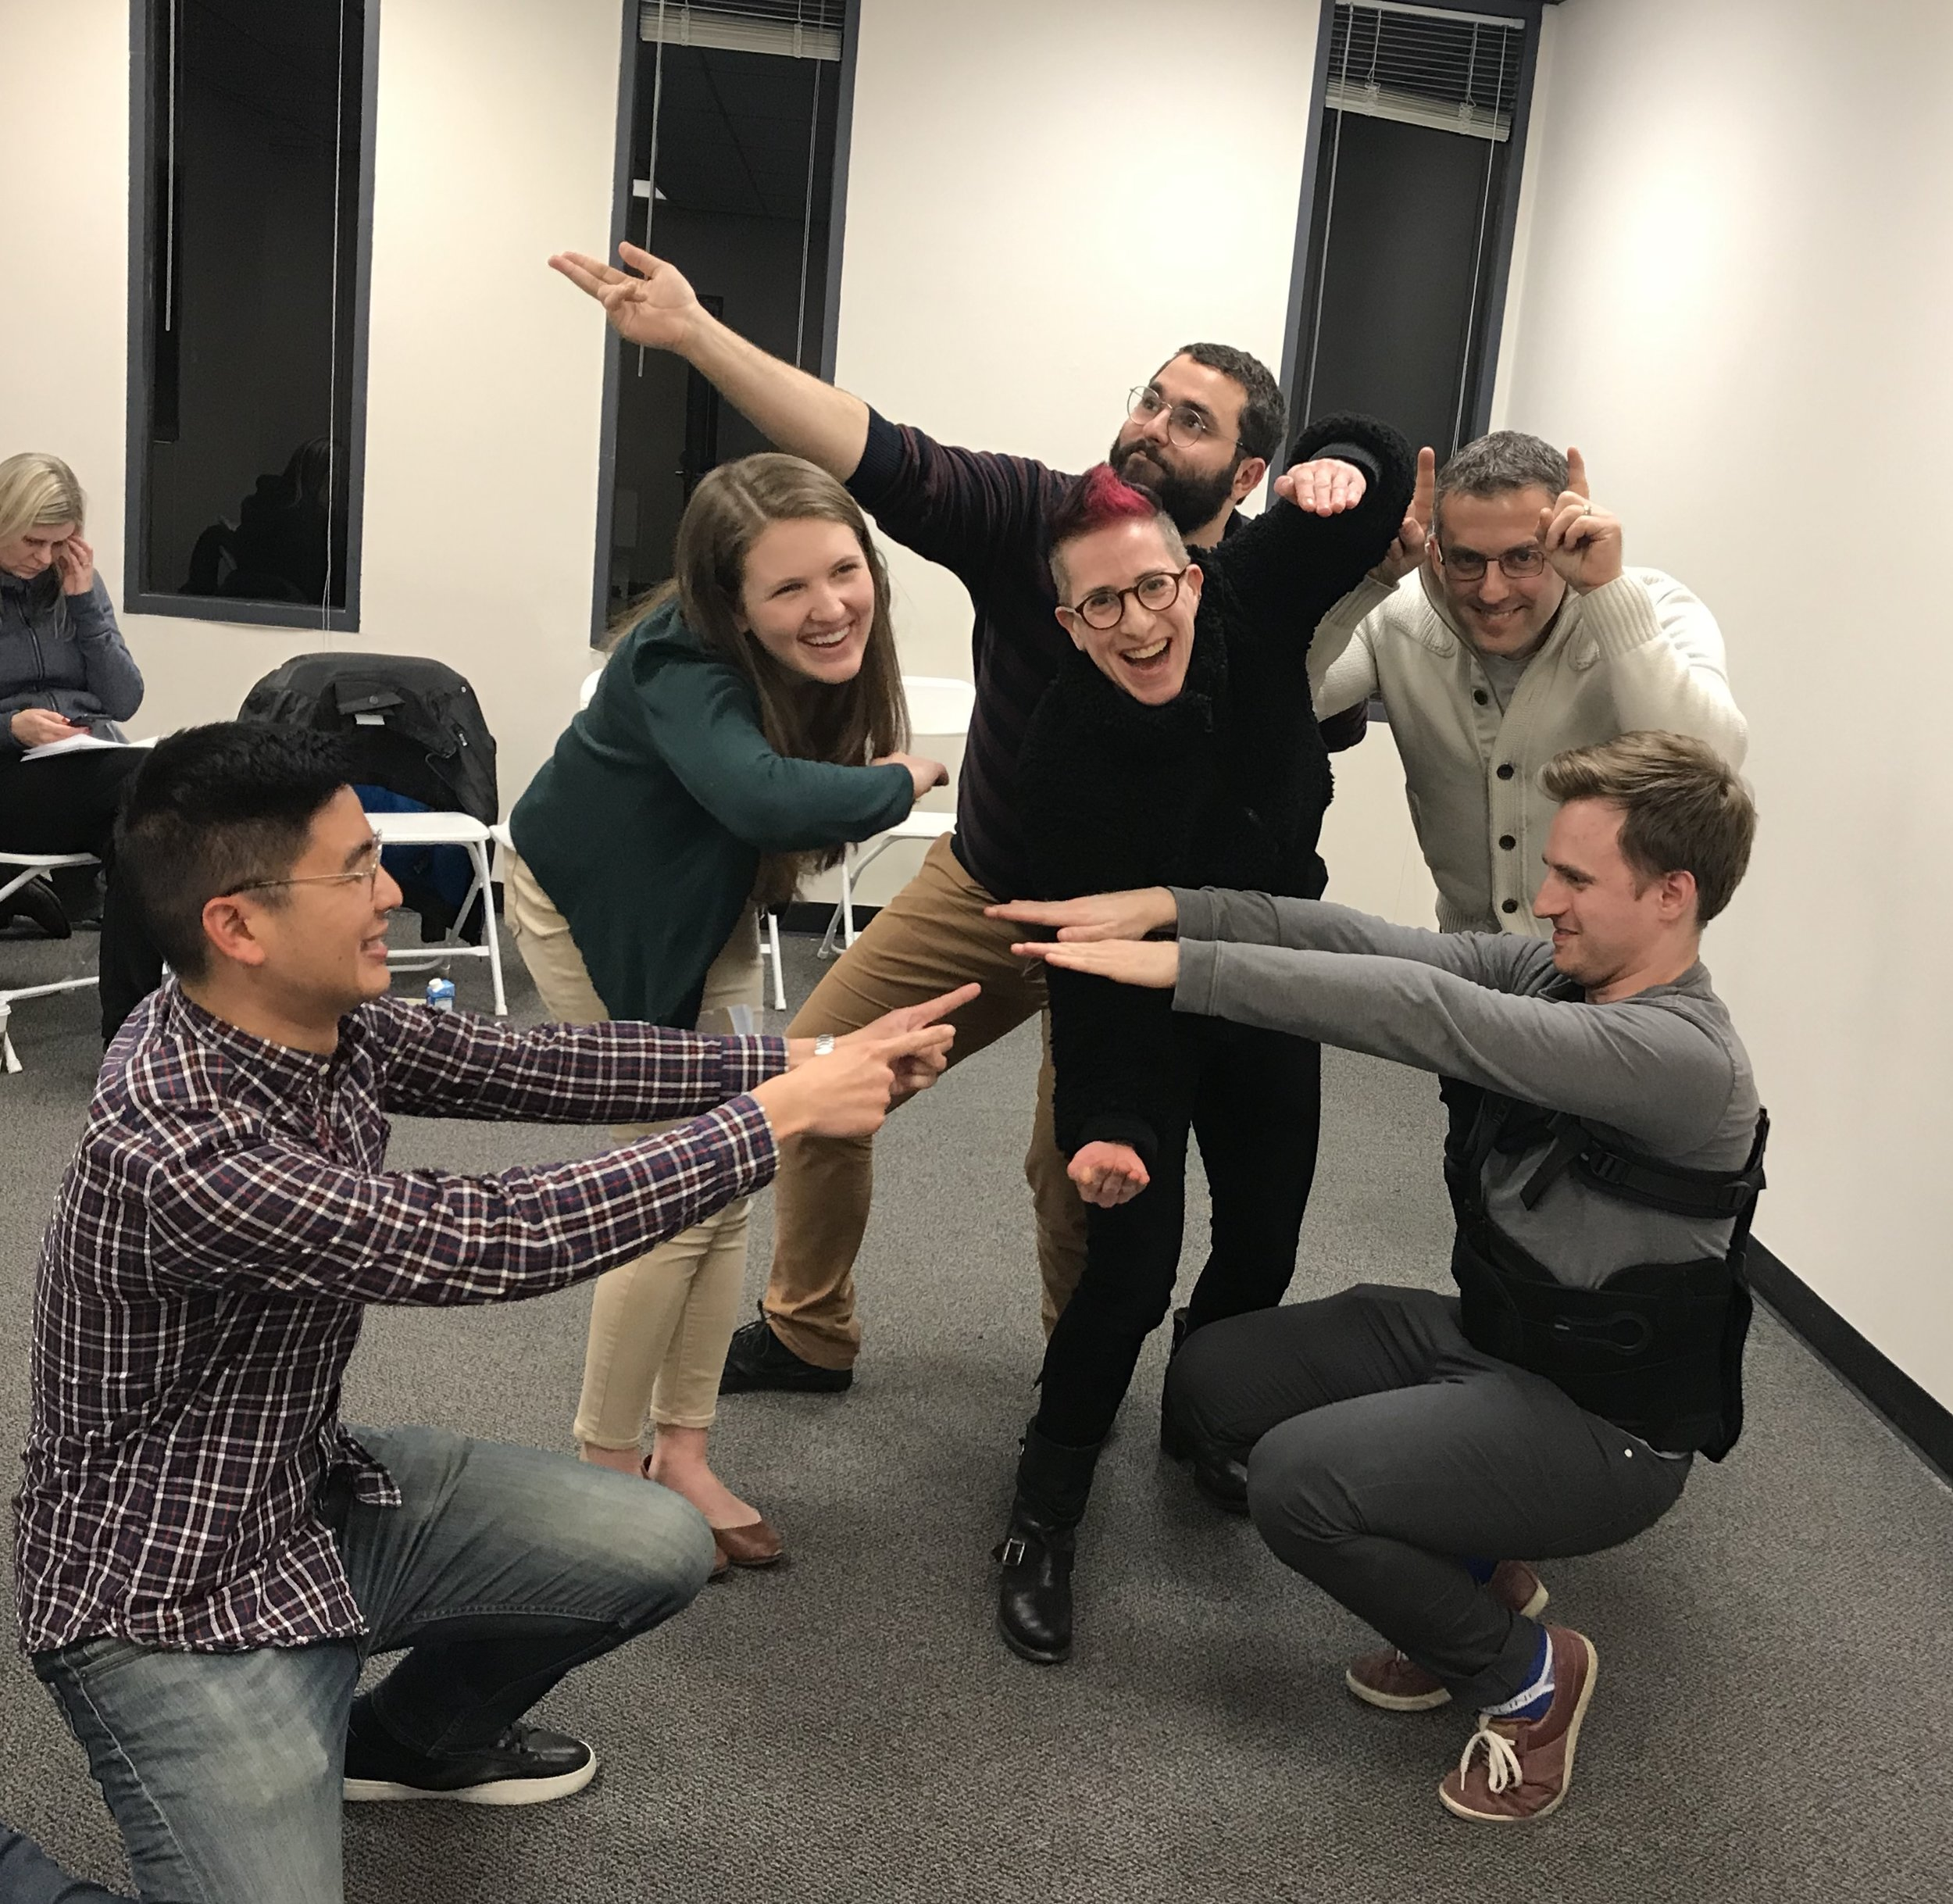 Goofing off in improv class is one of my only pure pleasures these days. I LOVE IT. How cute are my classmates, always game for a game.